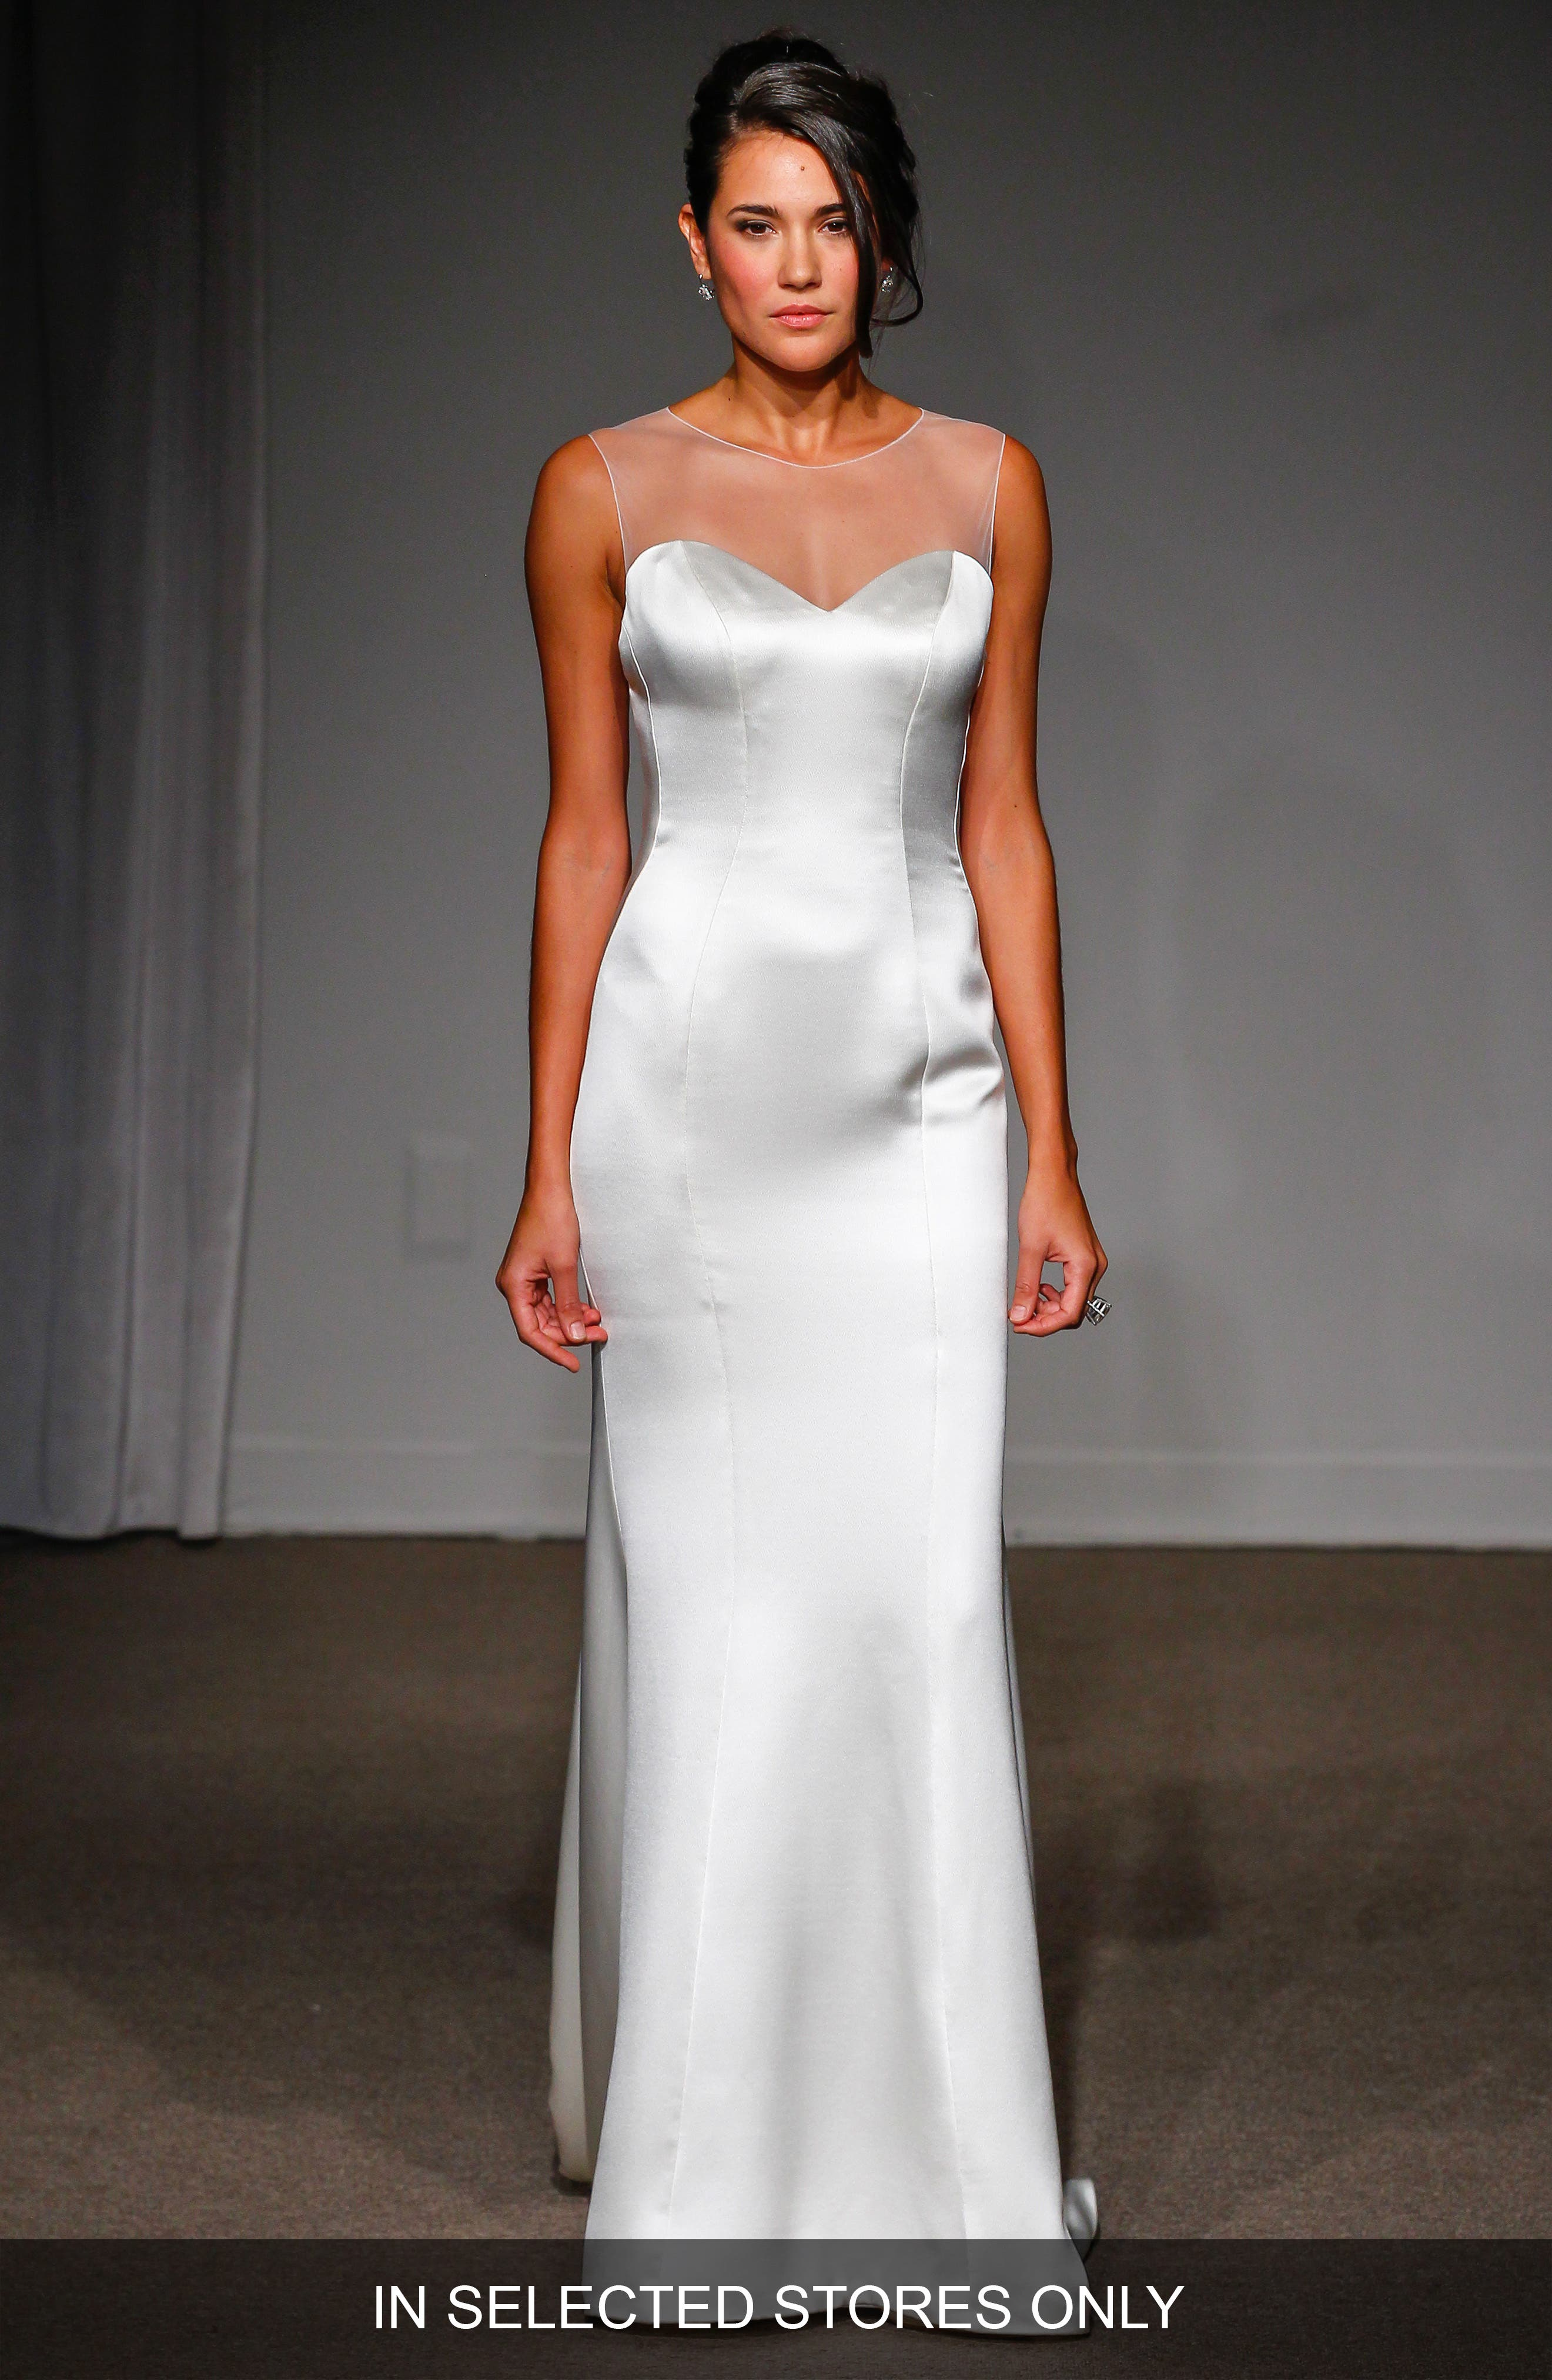 Anna Maier Couture 'Nicole' Illusion Neck Satin A-Line Gown (In Stores Only)